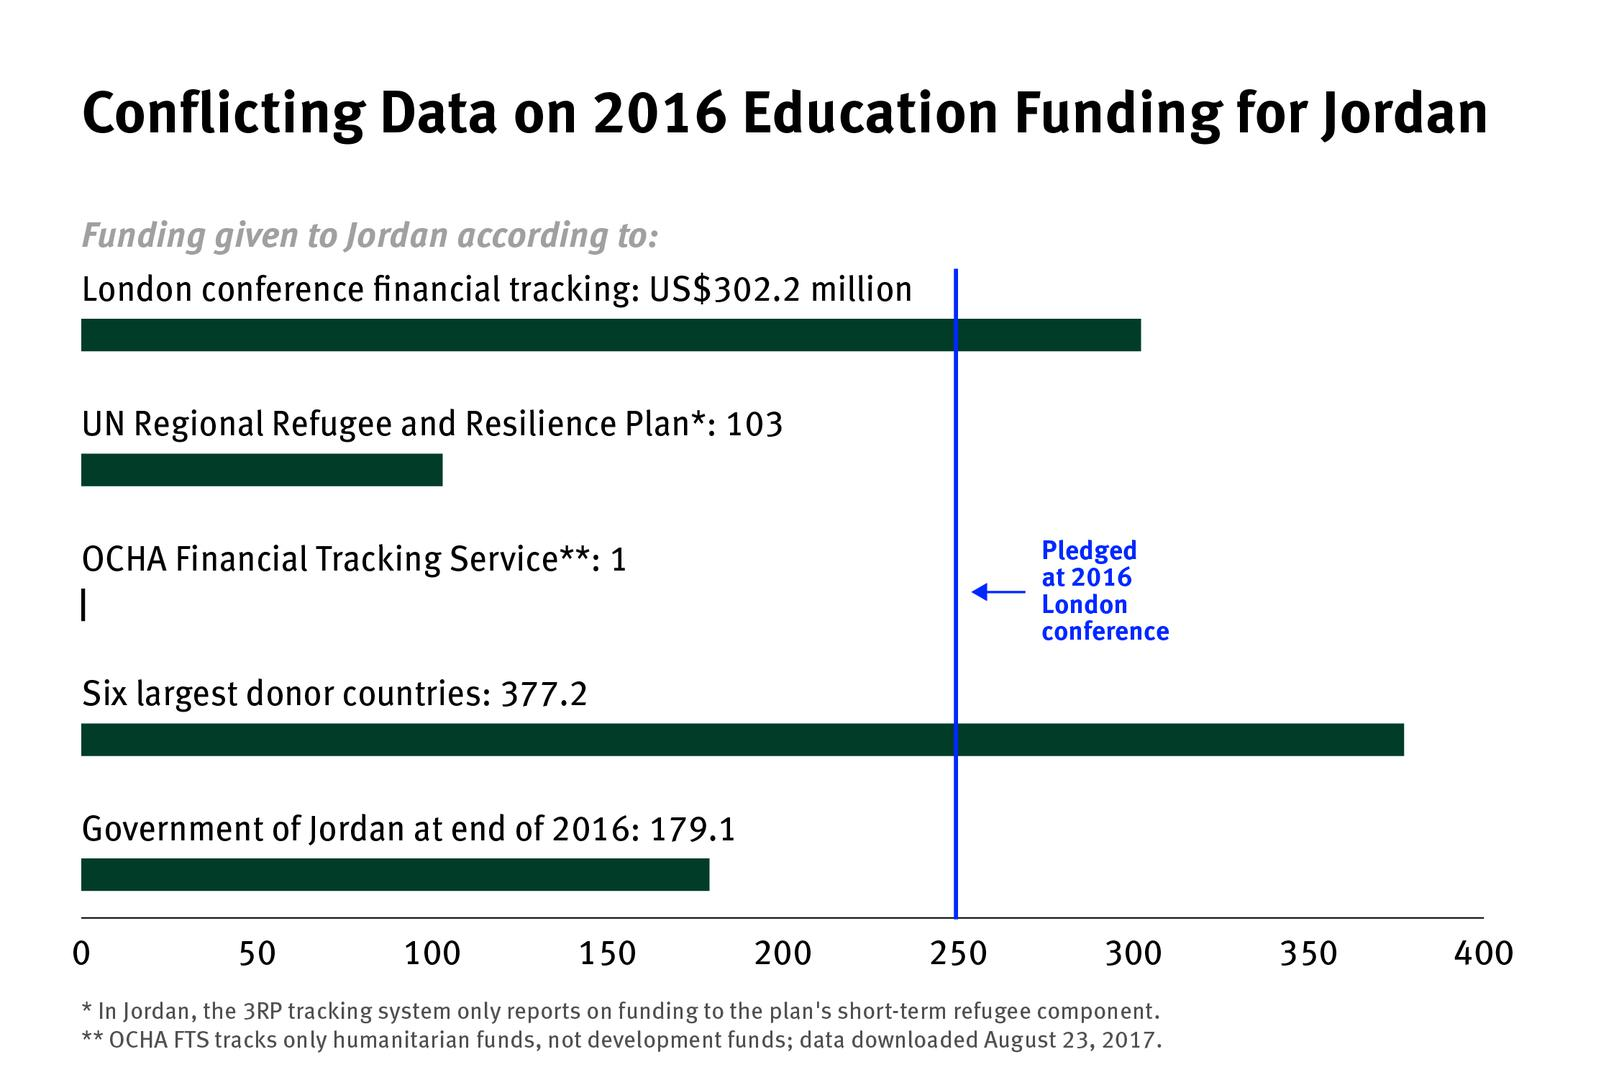 Conflicting data on 2016 education funding for Jordan